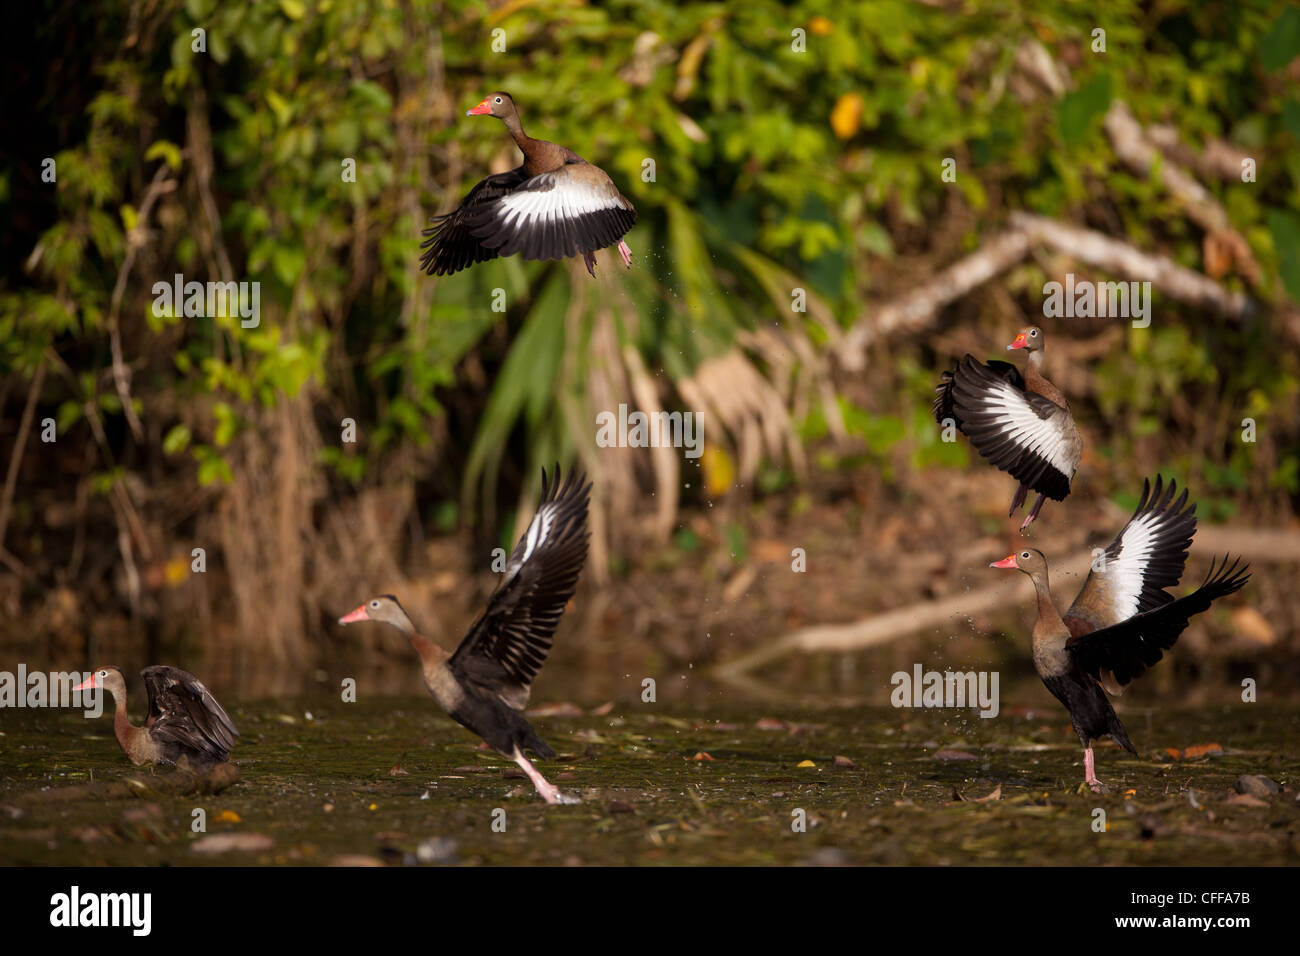 Black-bellied Whistling-ducks taking off from one of the sidearms of Gatun lake, Panama province, Republic of Panama. - Stock Image